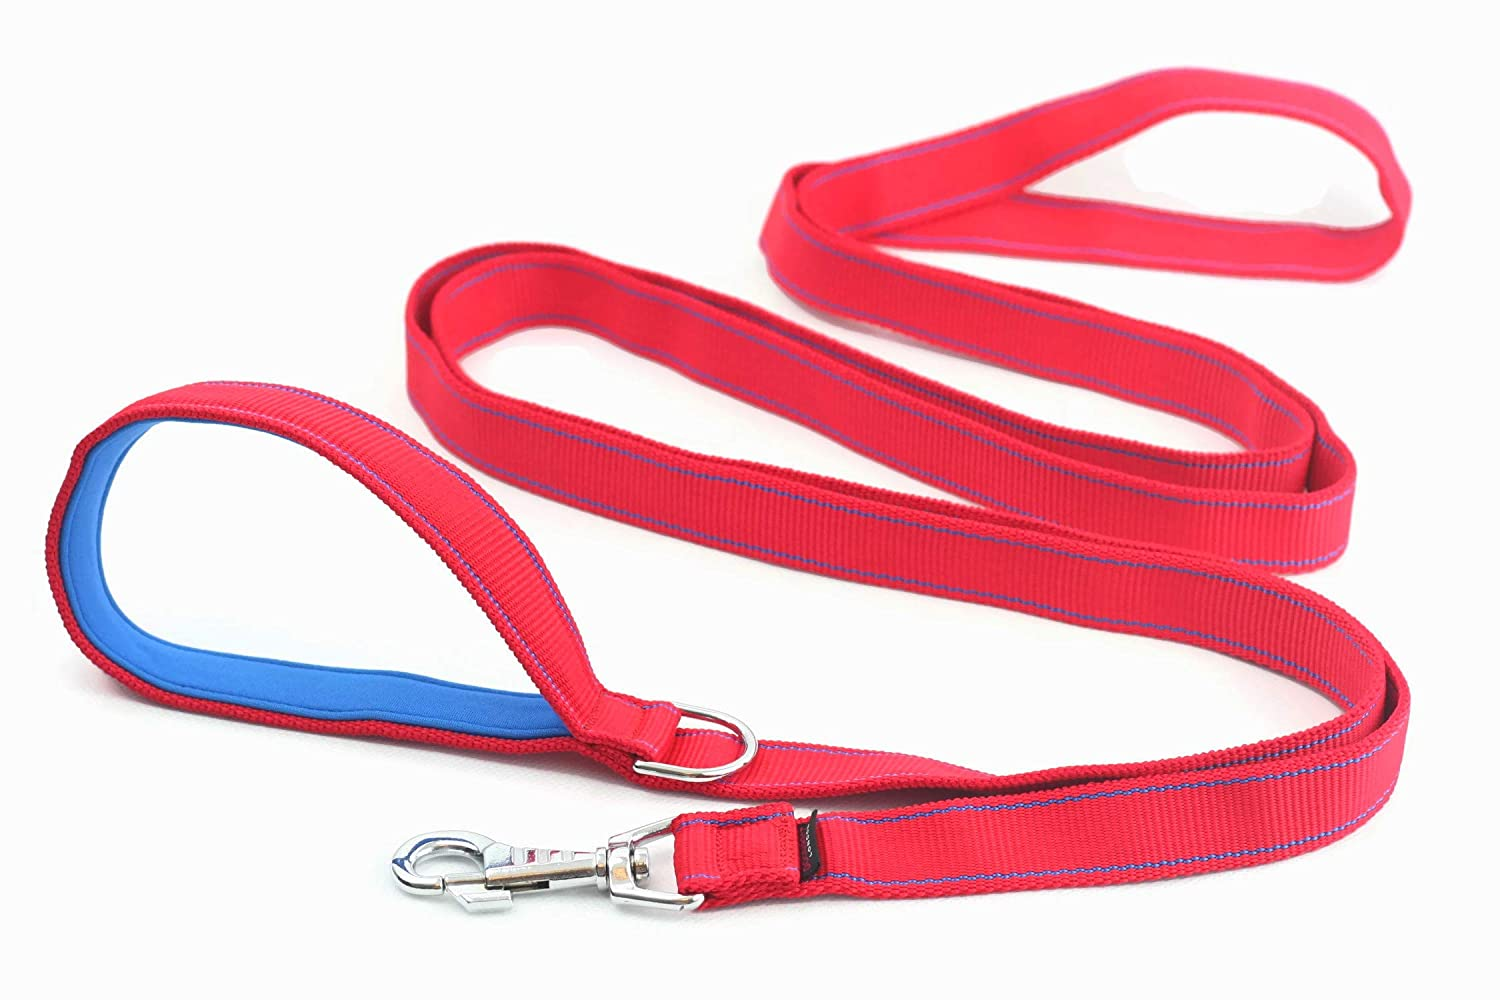 3m DOG LEAD LONG 300cm 118in STRONG LEASH for dog with a SOFT HANDLE, NEOPRENE PADDING VERY PLEASANT TO THE TOUCH, HI QUALITY Hand Made GENUINE DogDirect London NEO (Red-bluee) 3N6